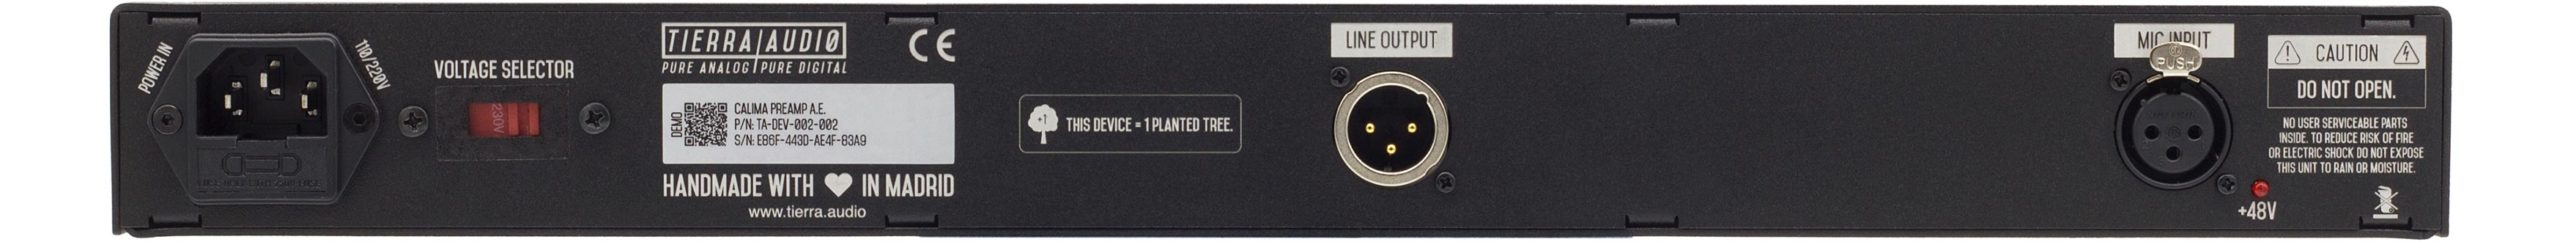 Calima Preamp Back Panel